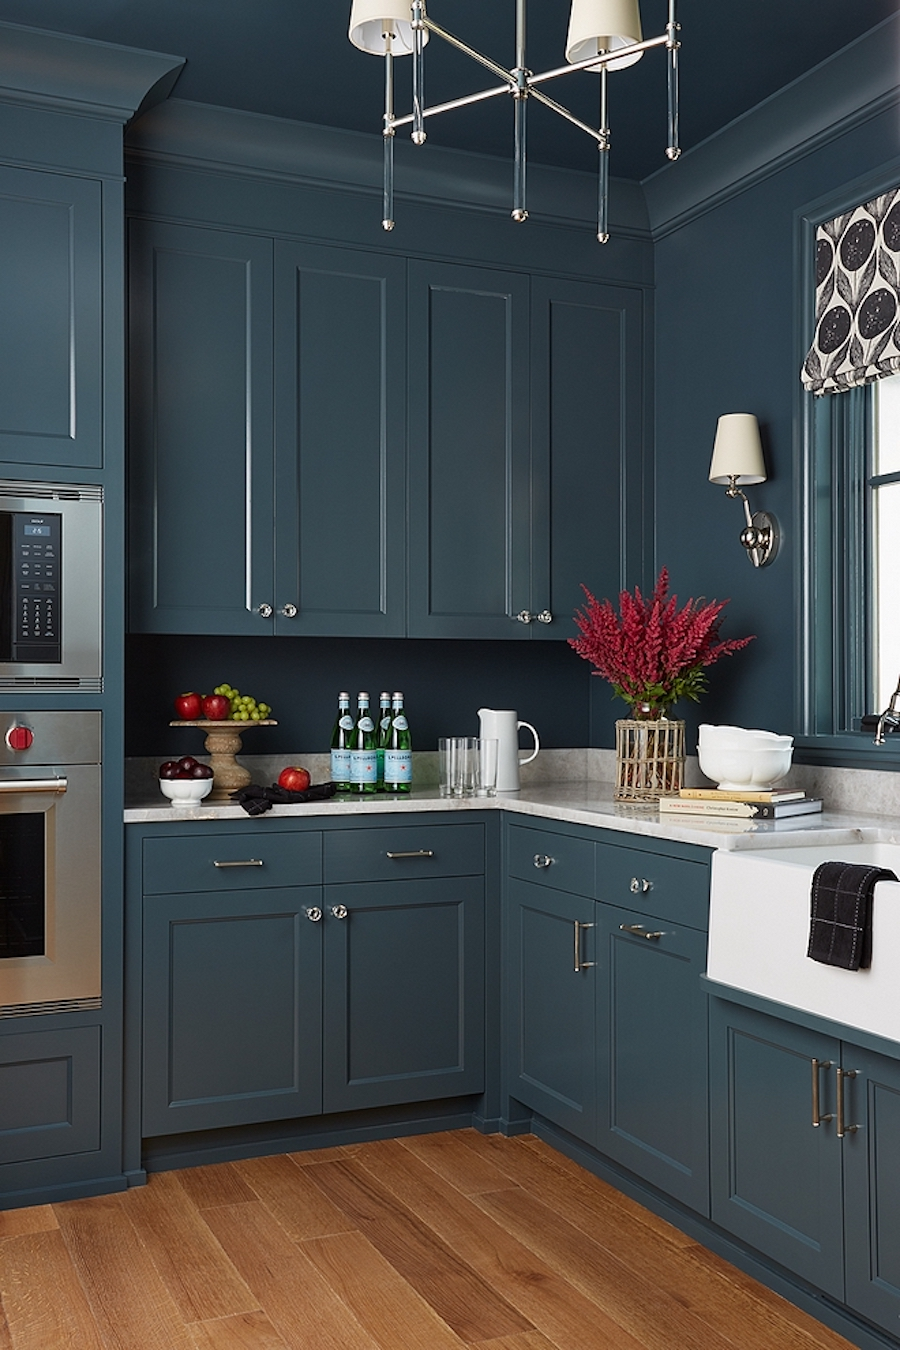 painted-cabinets-walls-kitchen-navy-blue